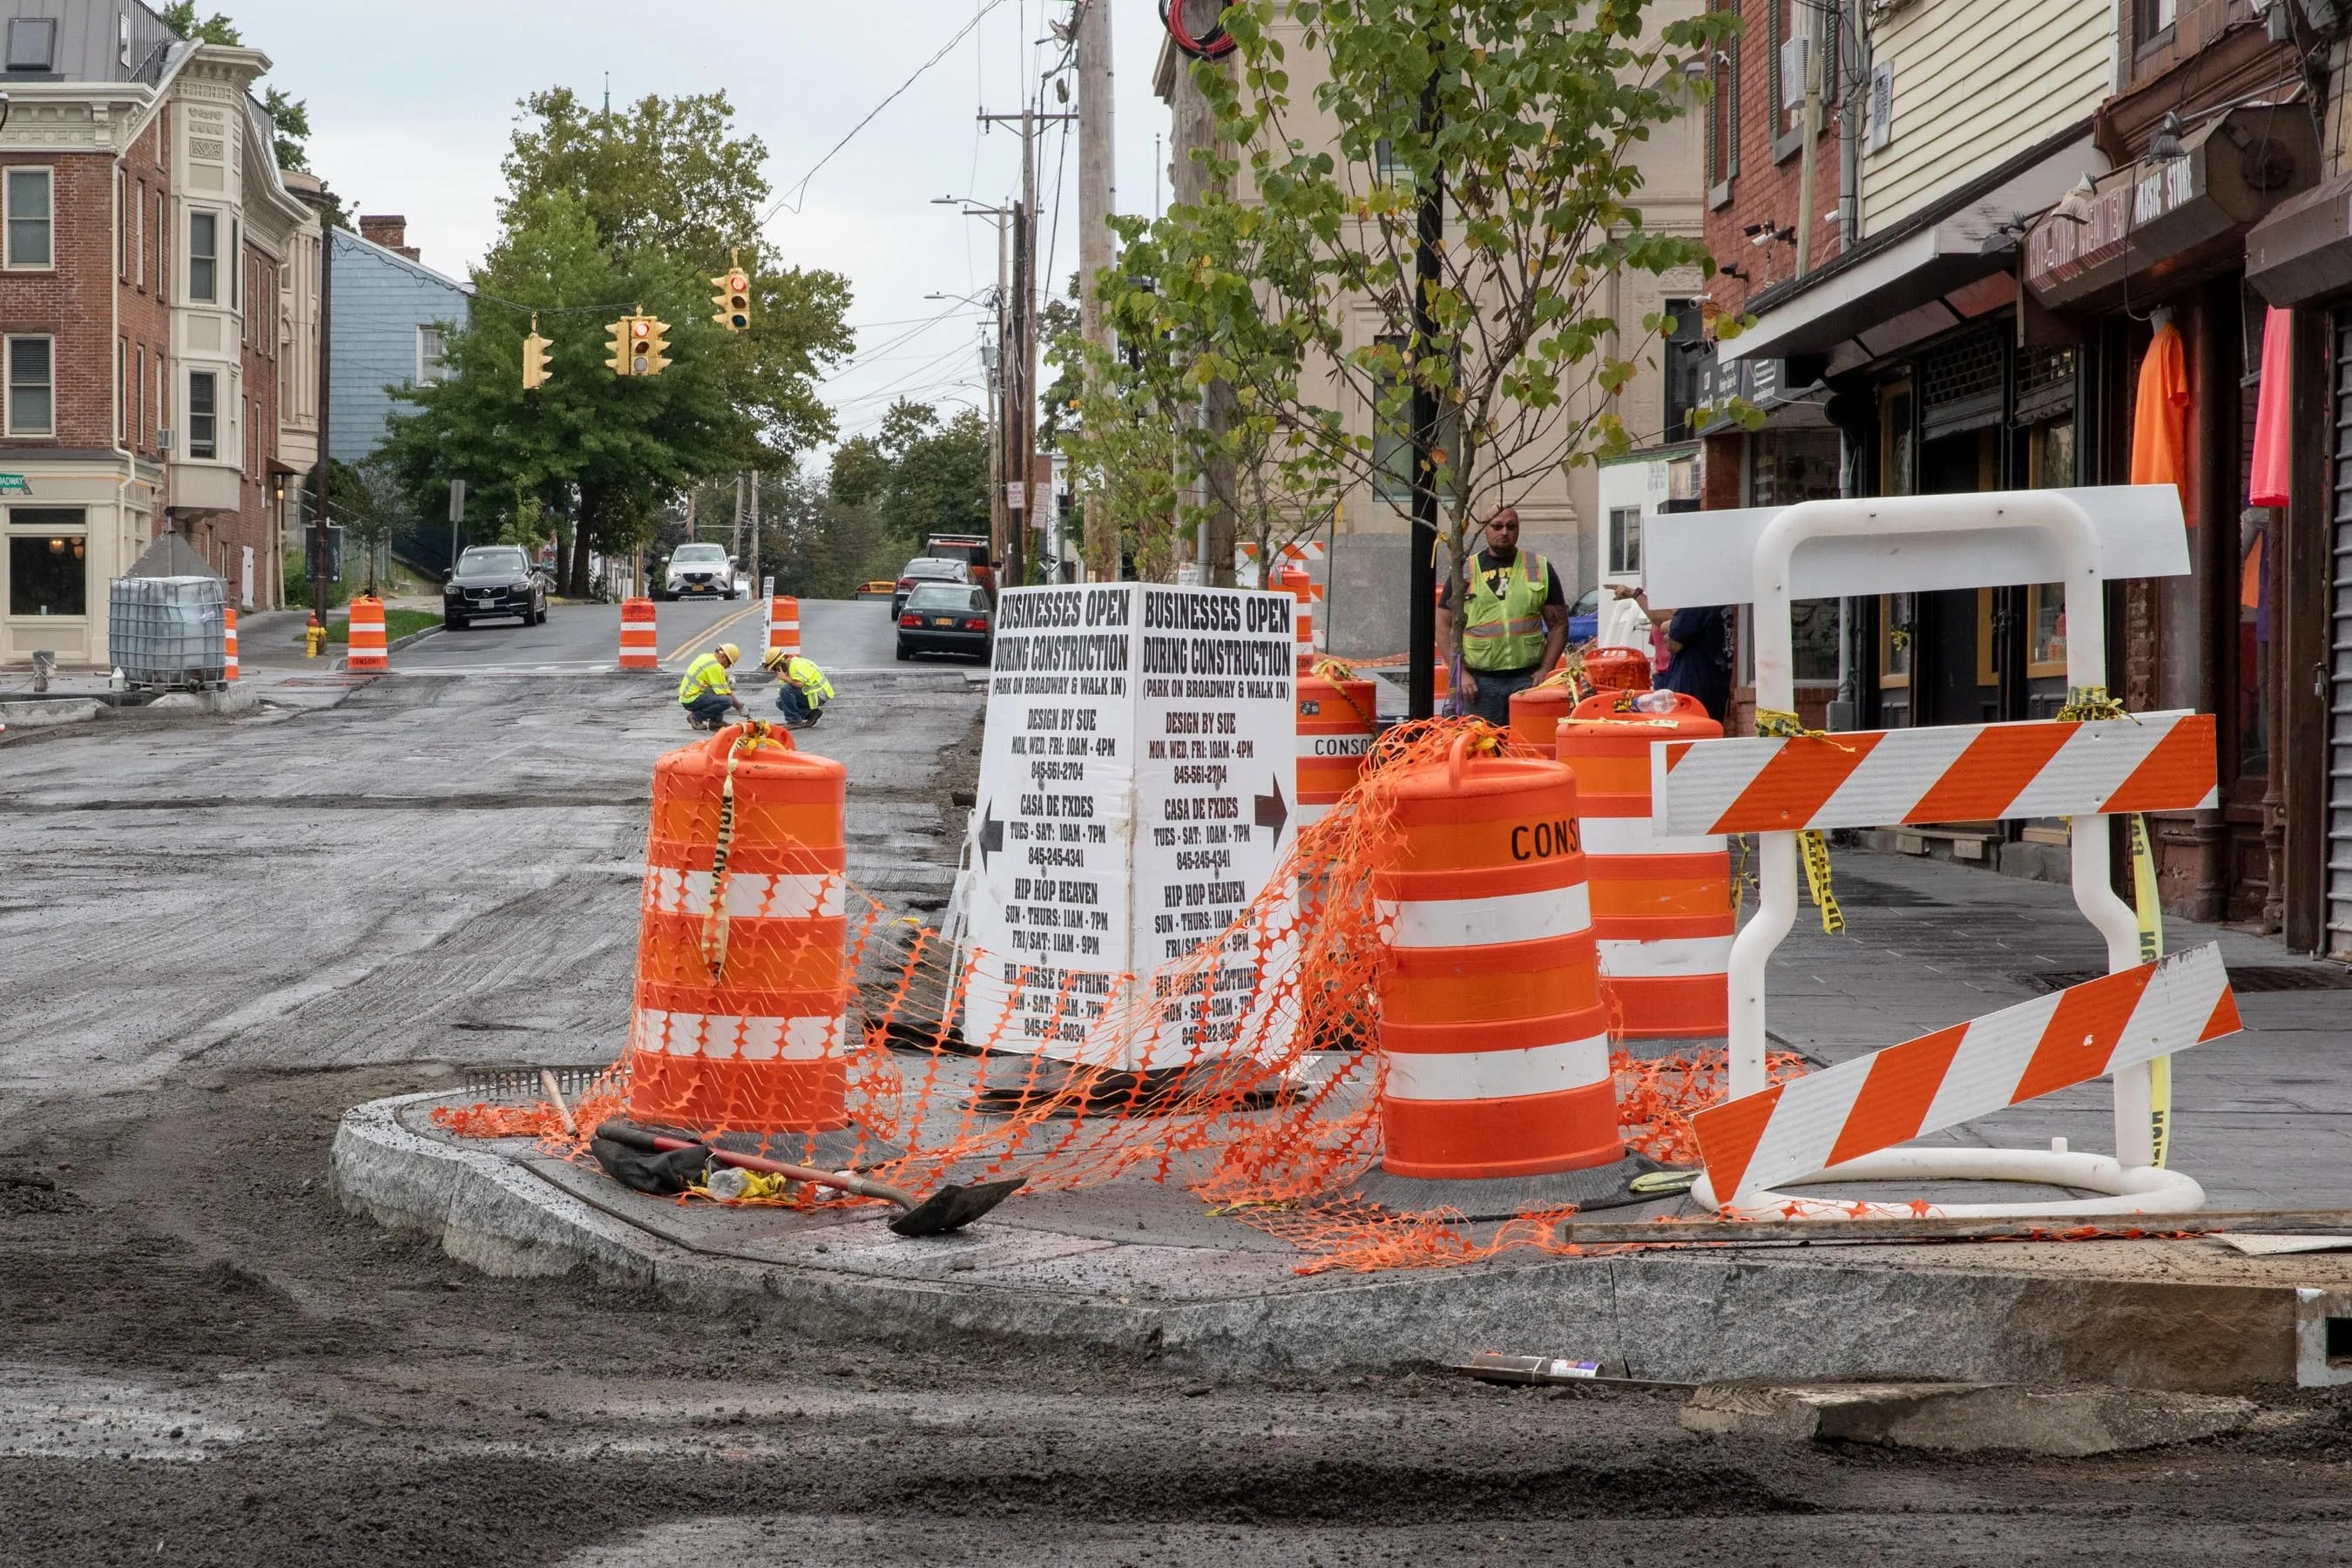 Ongoing construction on Liberty Street in Newburgh, seen on Sept. 9, 2021. Business owners say the delays have hampered access to their shops and limited foot traffic.